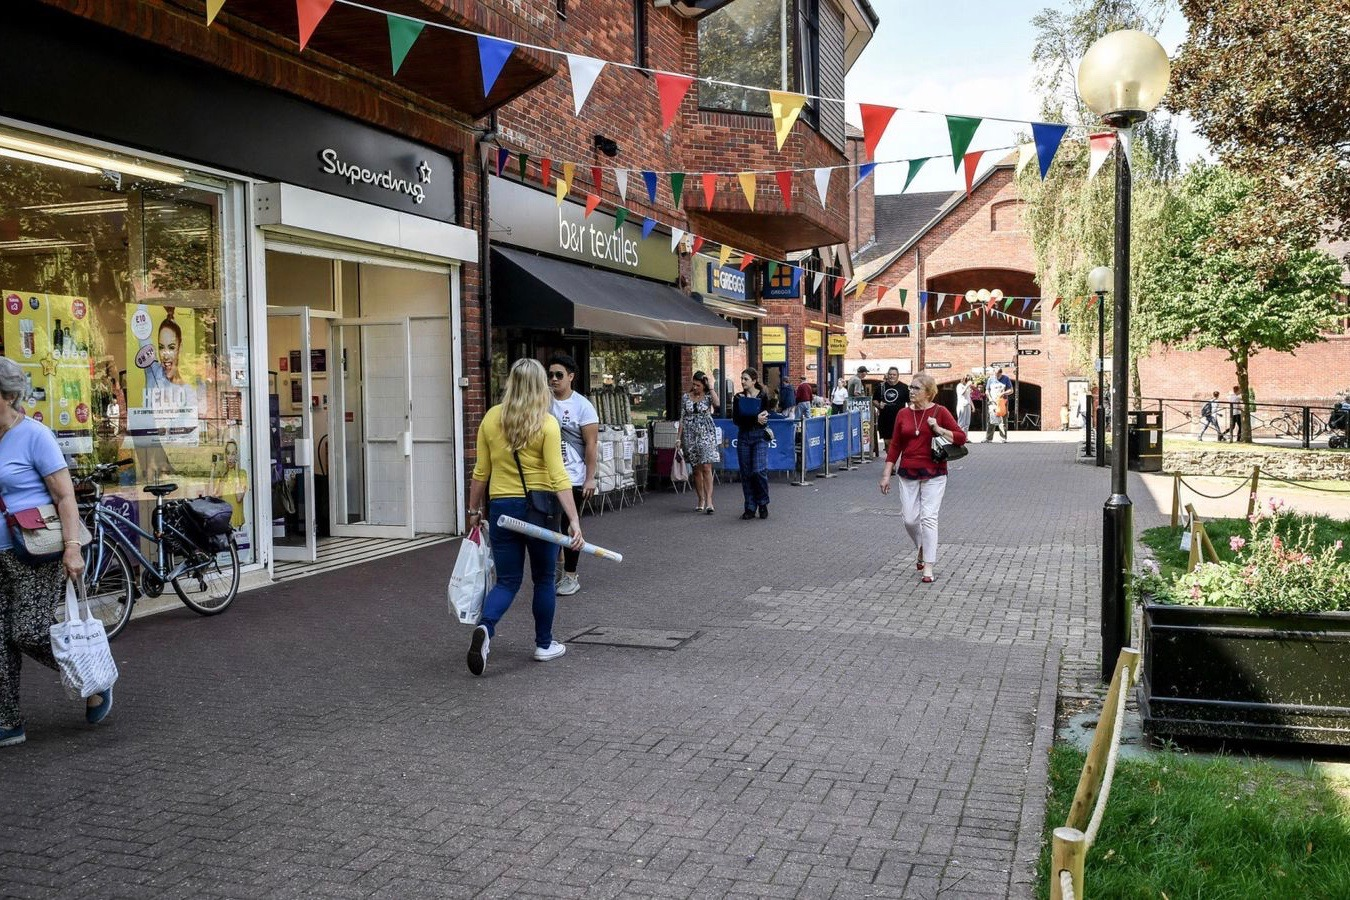 Salisbury town centre is one of the places that will benefit from the fund